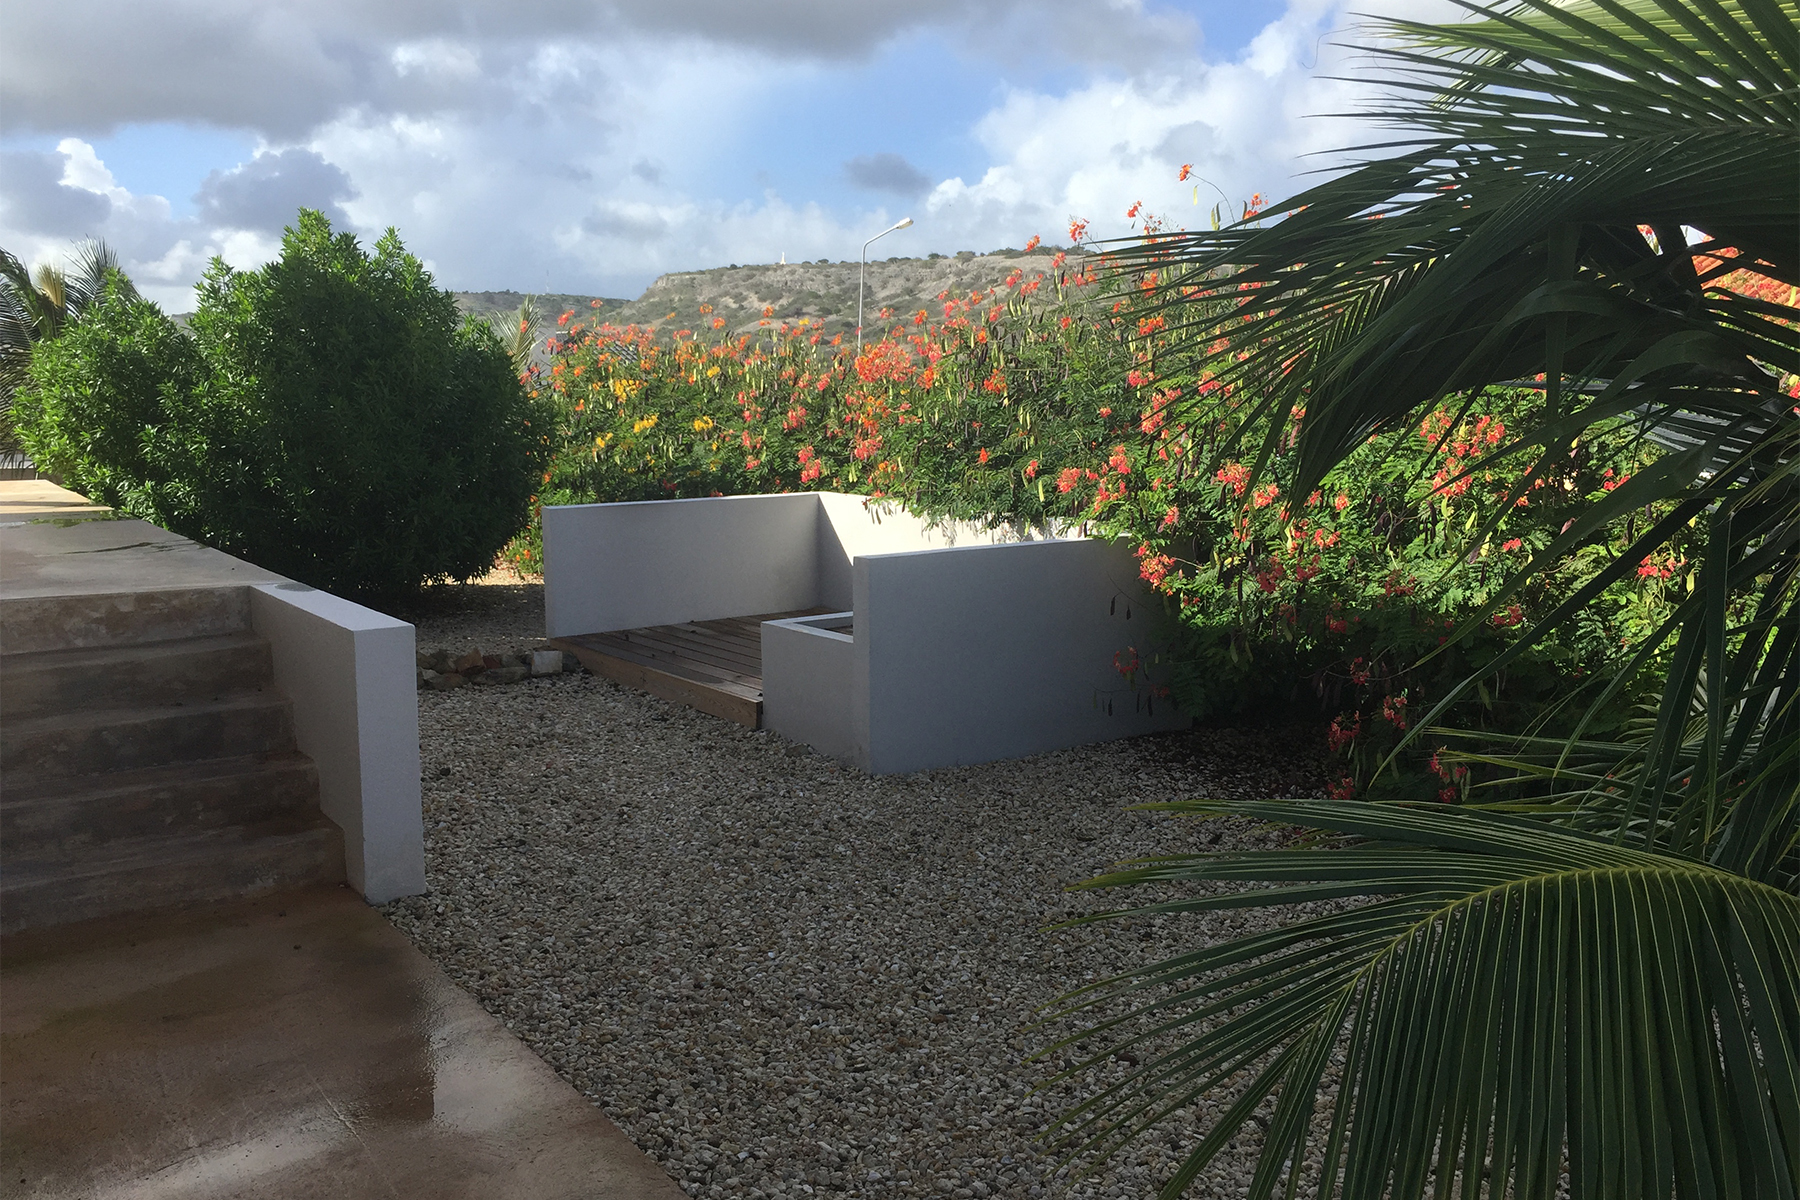 Additional photo for property listing at Villa Ike Other Cities In Bonaire, Cities In Bonaire 博内尔